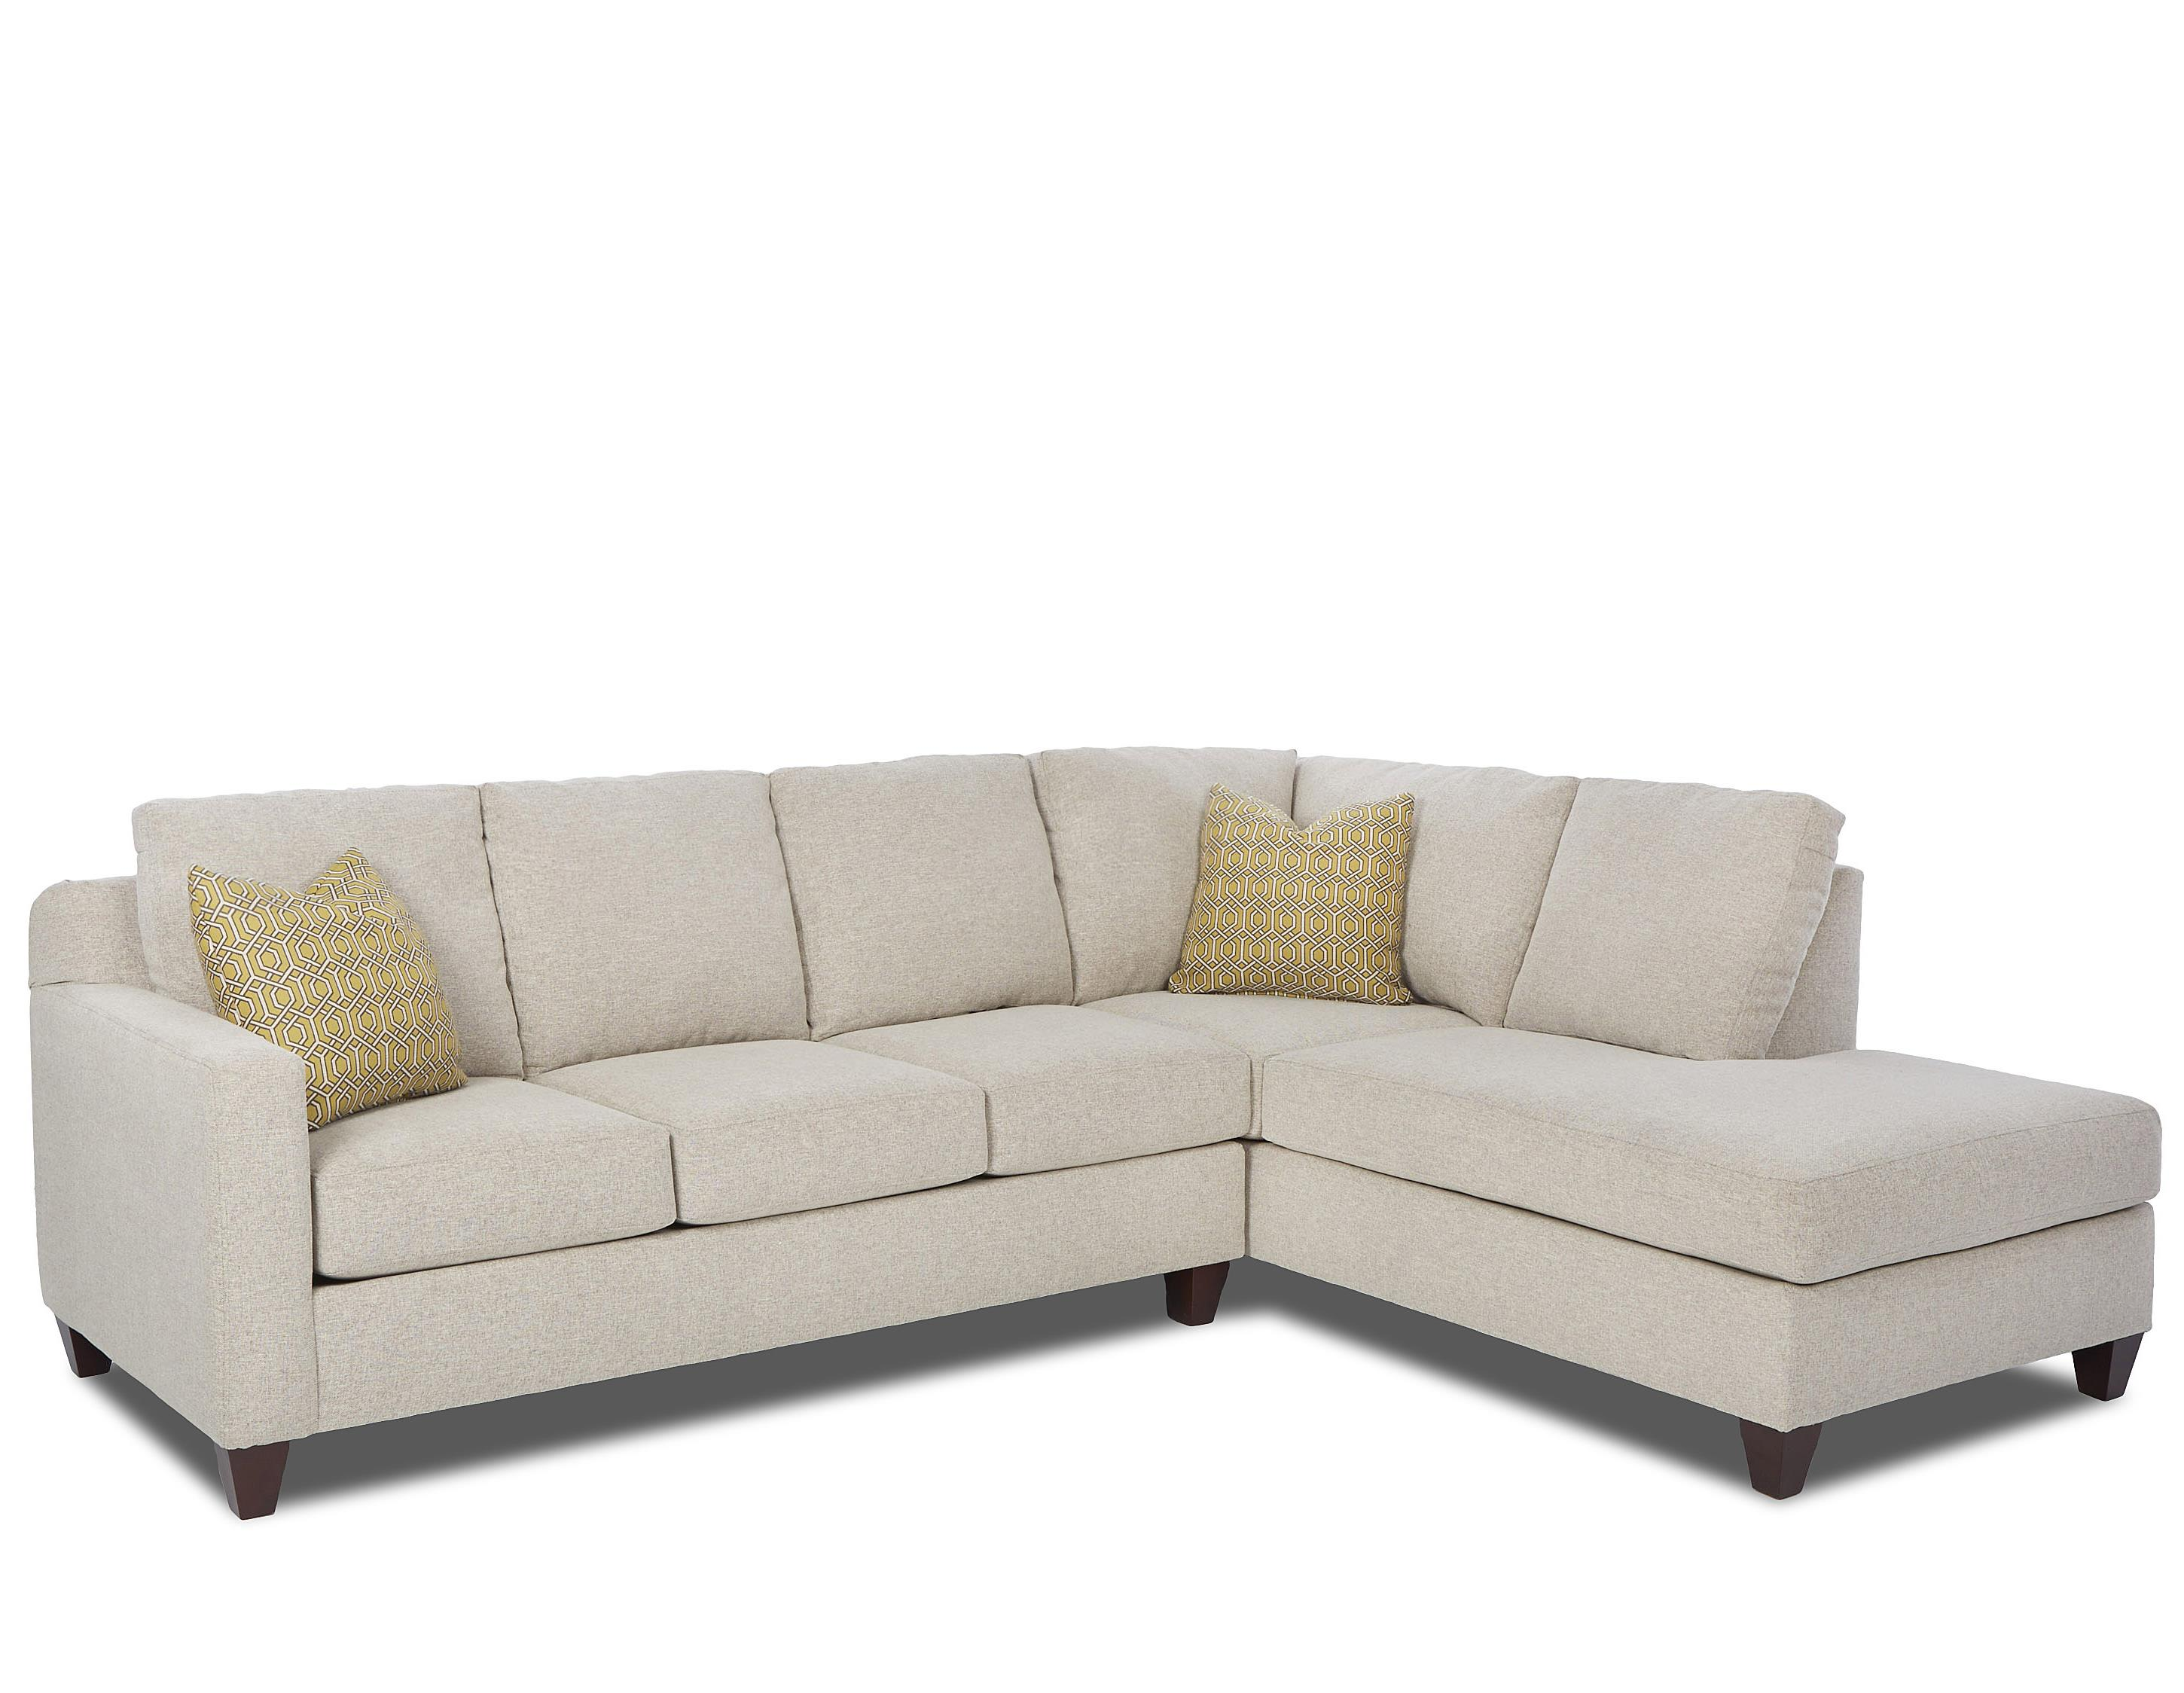 Klaussner Bosco Contemporary 2 Piece Sectional with Right Arm